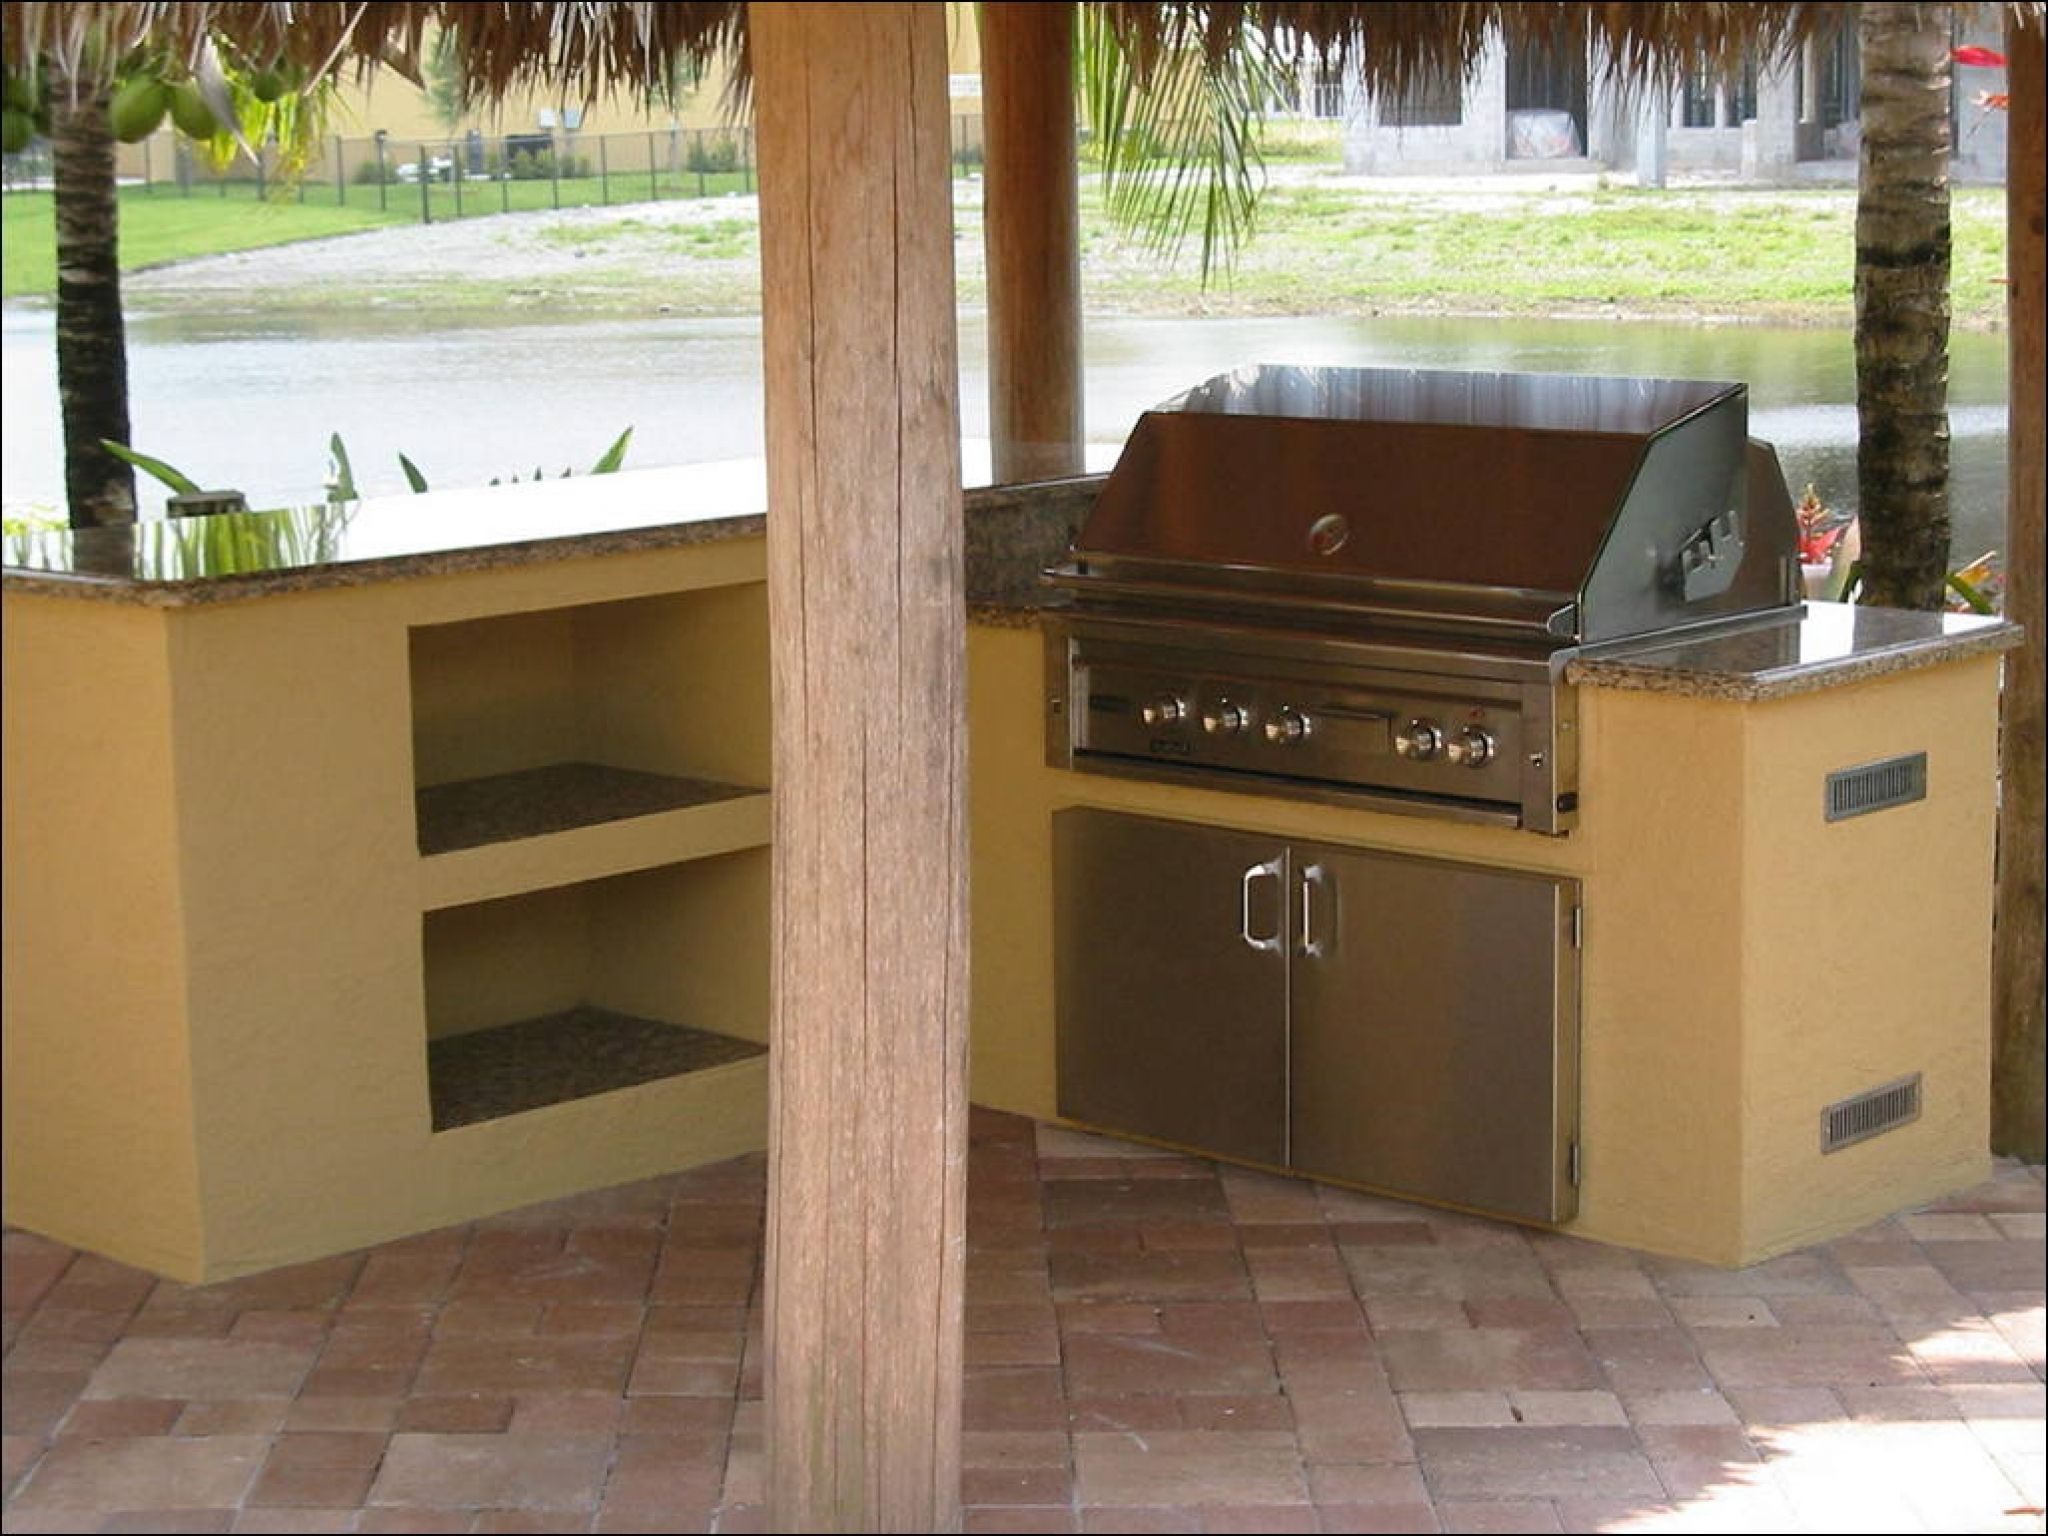 Outdoor Kitchen Cabinets Polymer Best Interior Wall Paint Check More At Http Www Mtbasics Com O Outdoor Kitchen Cabinets Interior Wall Paint House Interior